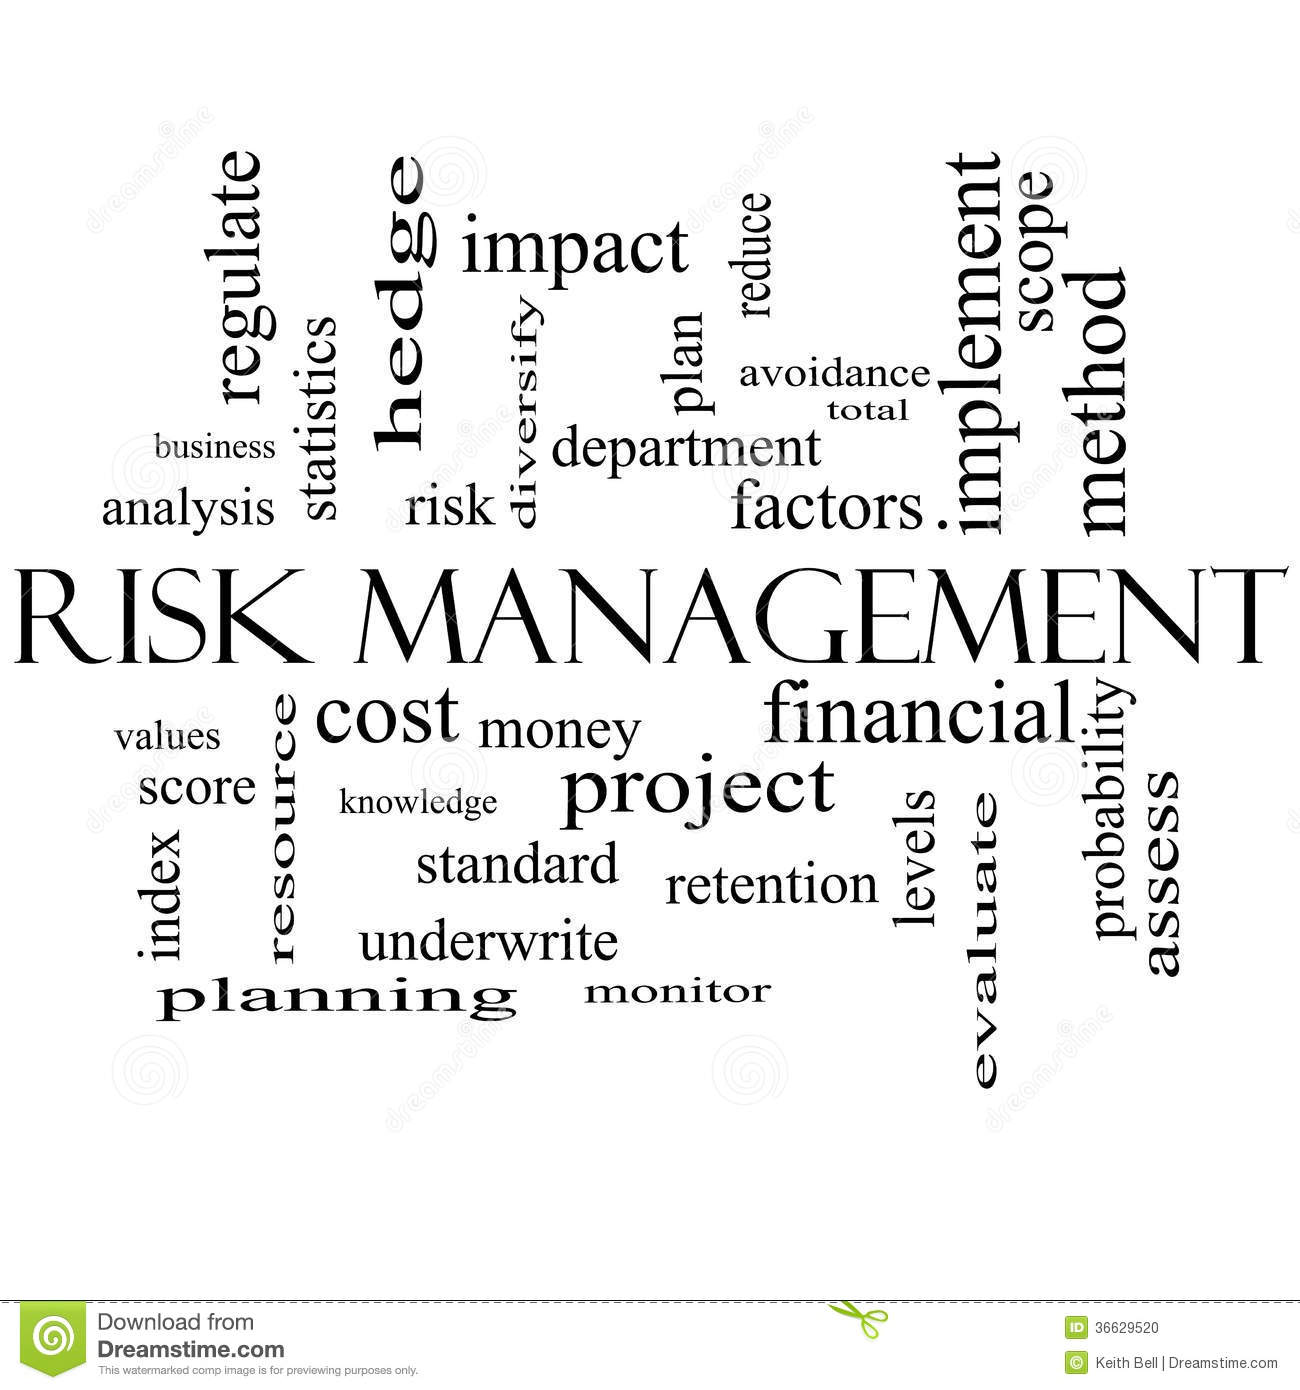 Risk Management Word Cloud Concept in black and white